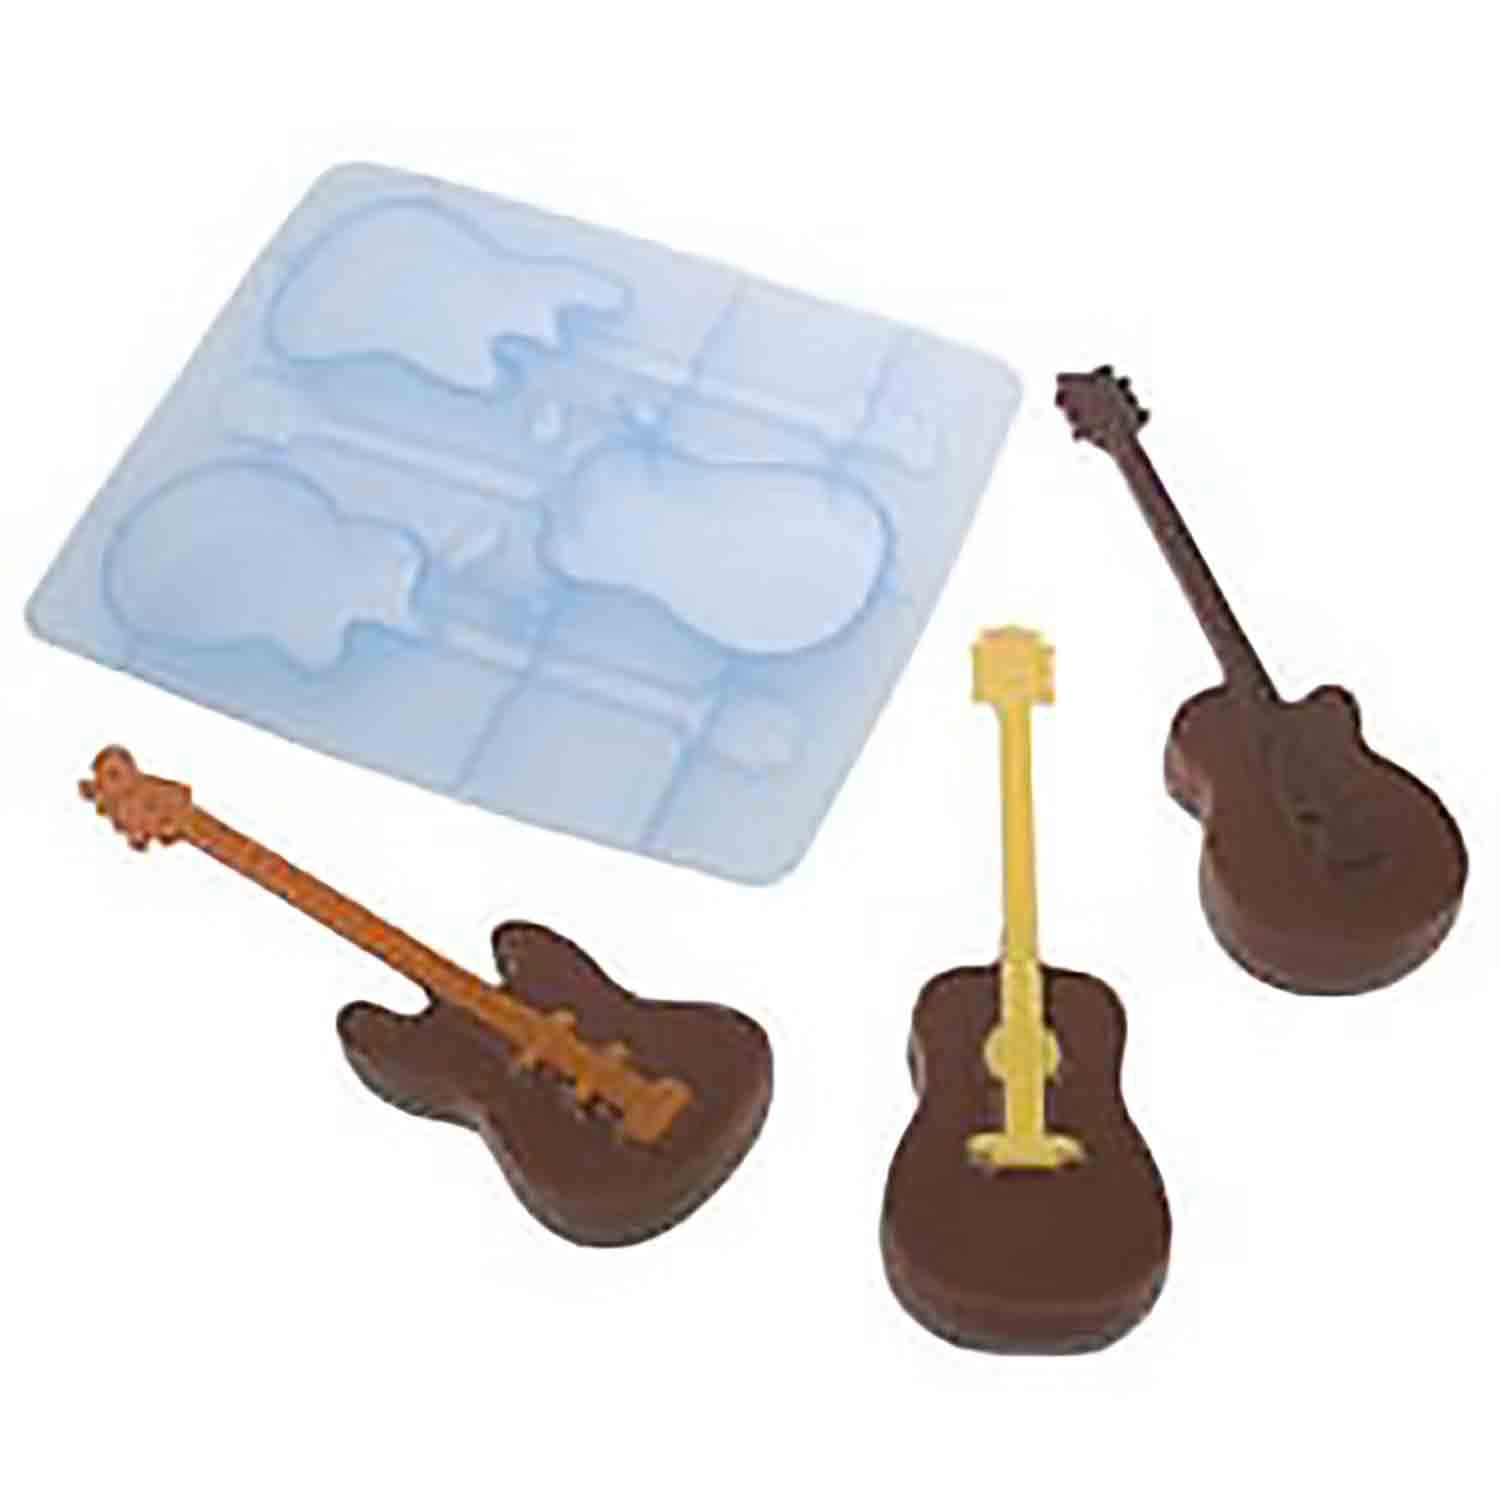 Guitar - Silicone Ice and Candy Mold